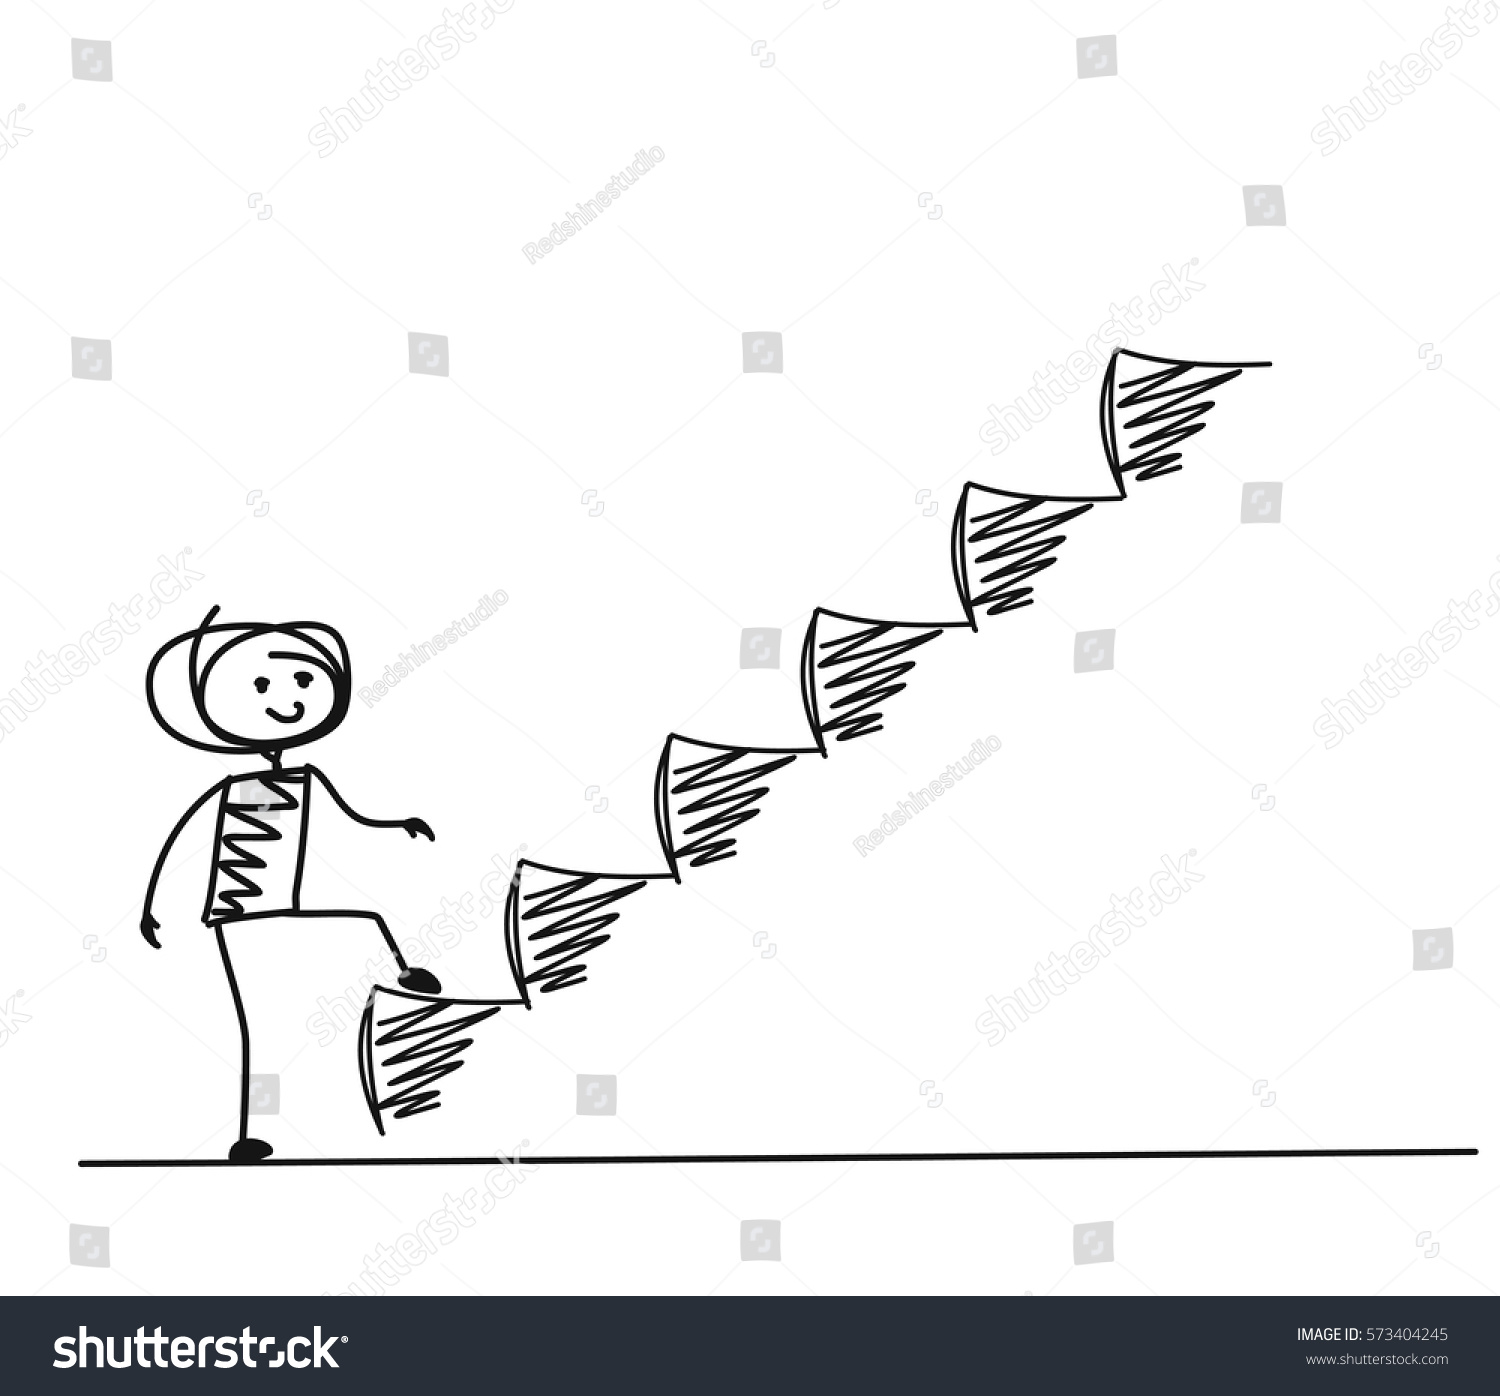 stock-vector-man-taking-step-or-achievement-cartoon-hand-drawn